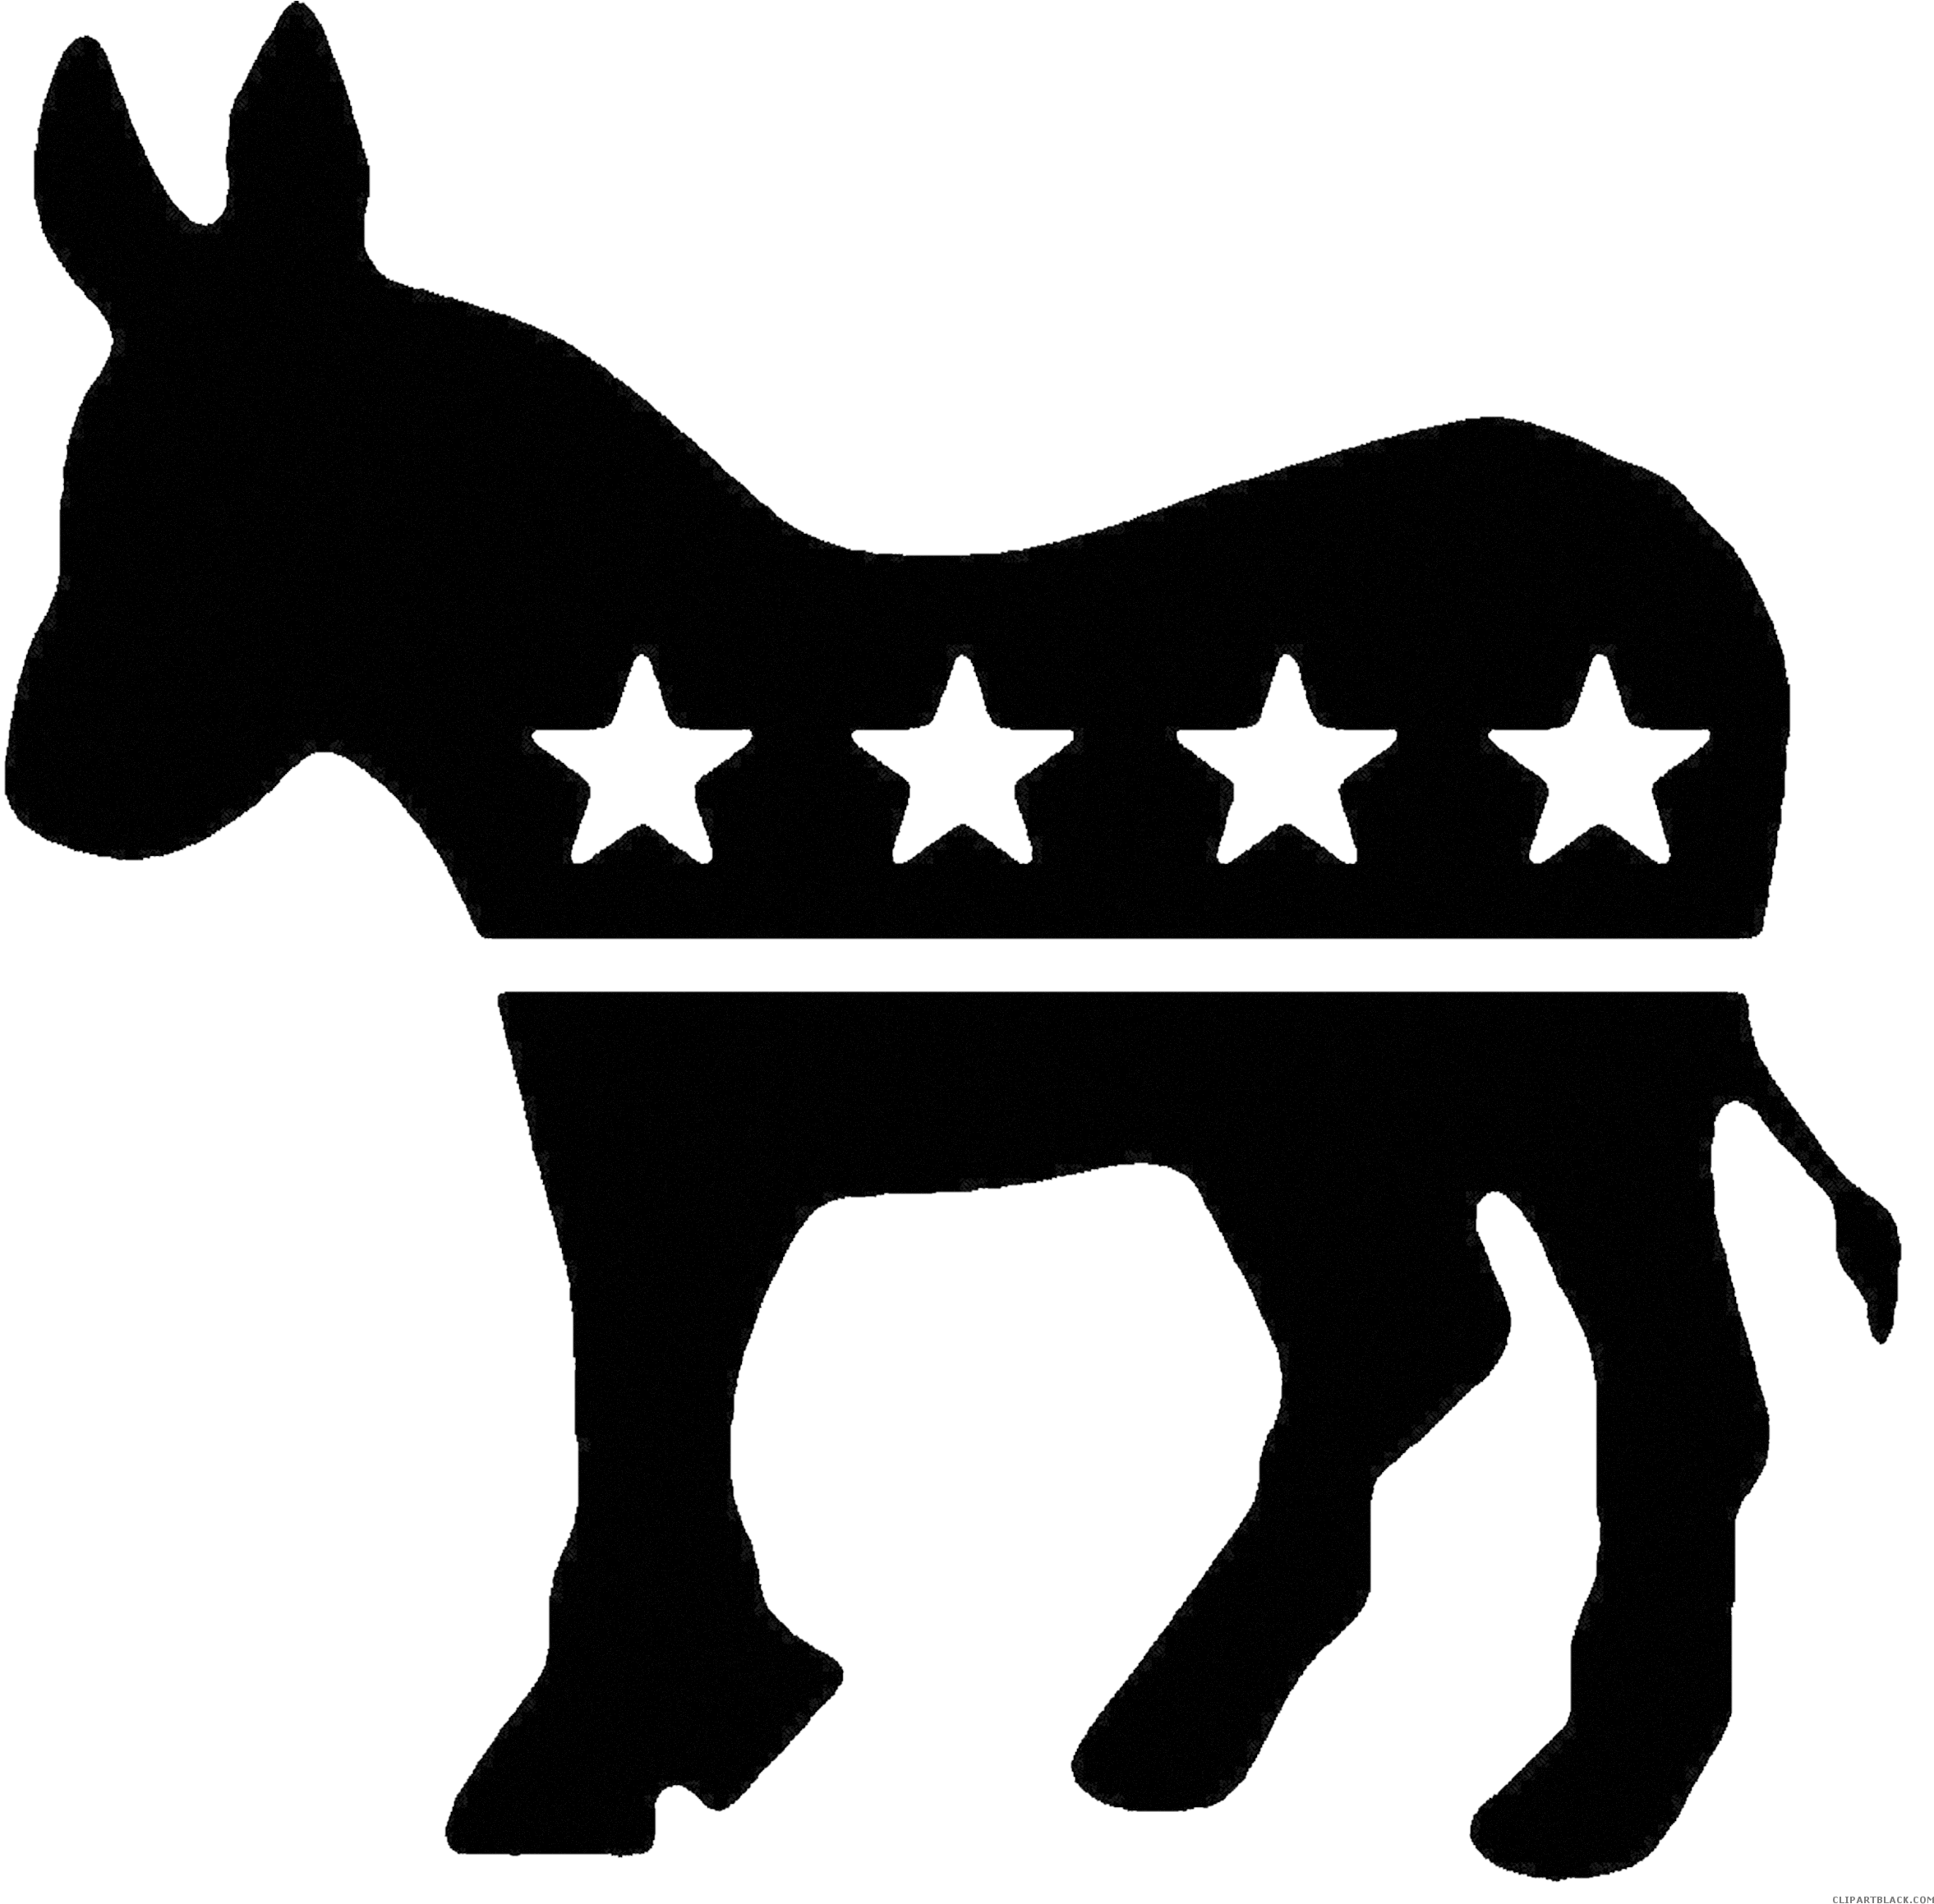 Donkey Shrek Png Graphic Transparent Stock Democratic Clipartblack Com Democratic Party Logo Black And White 505946 Vippng